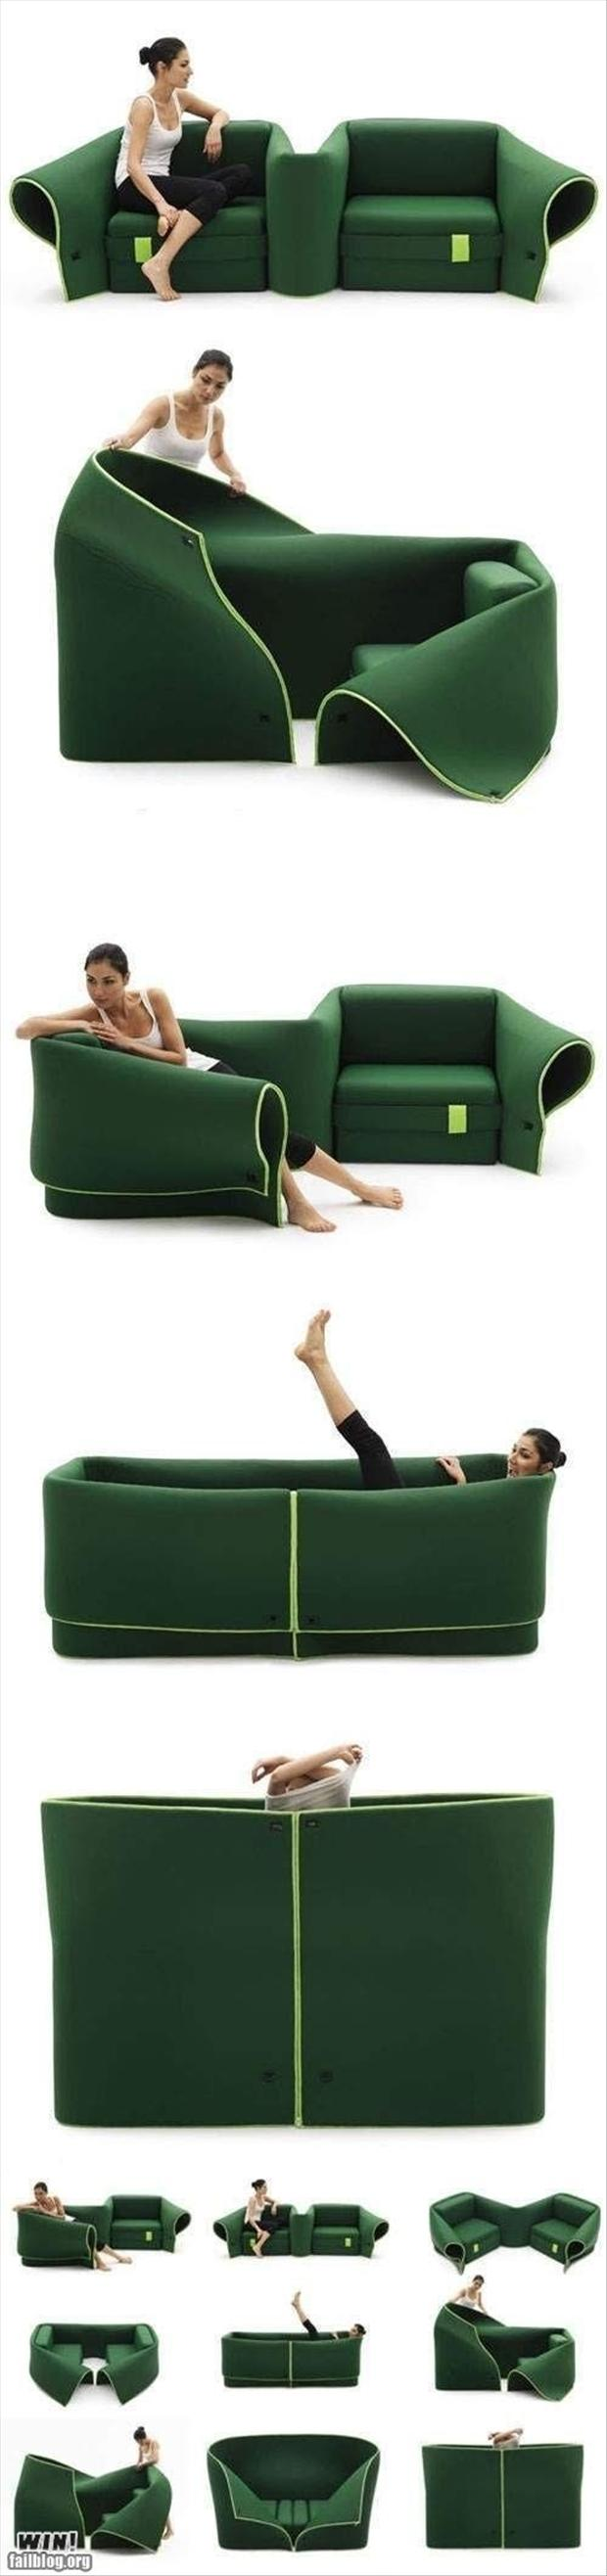 z amazing flexable couch